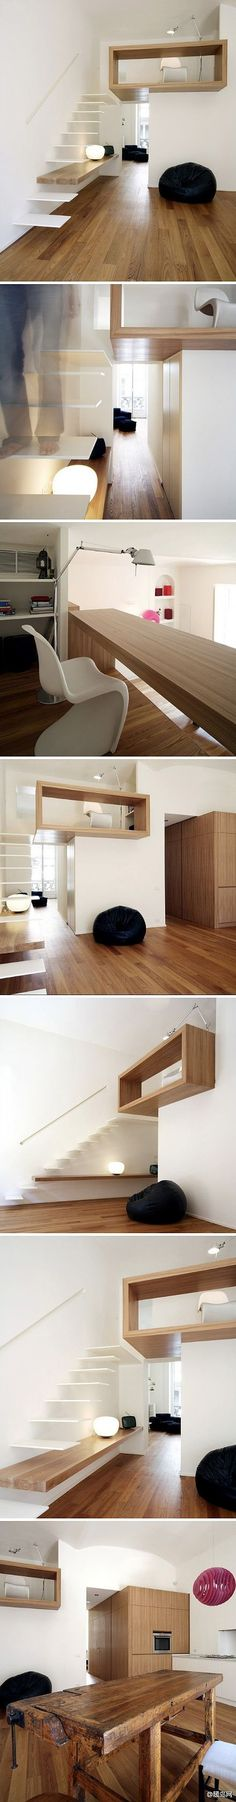 Popular Image | Welcome to SaiFou – Inspiring images home work space office minimal studio